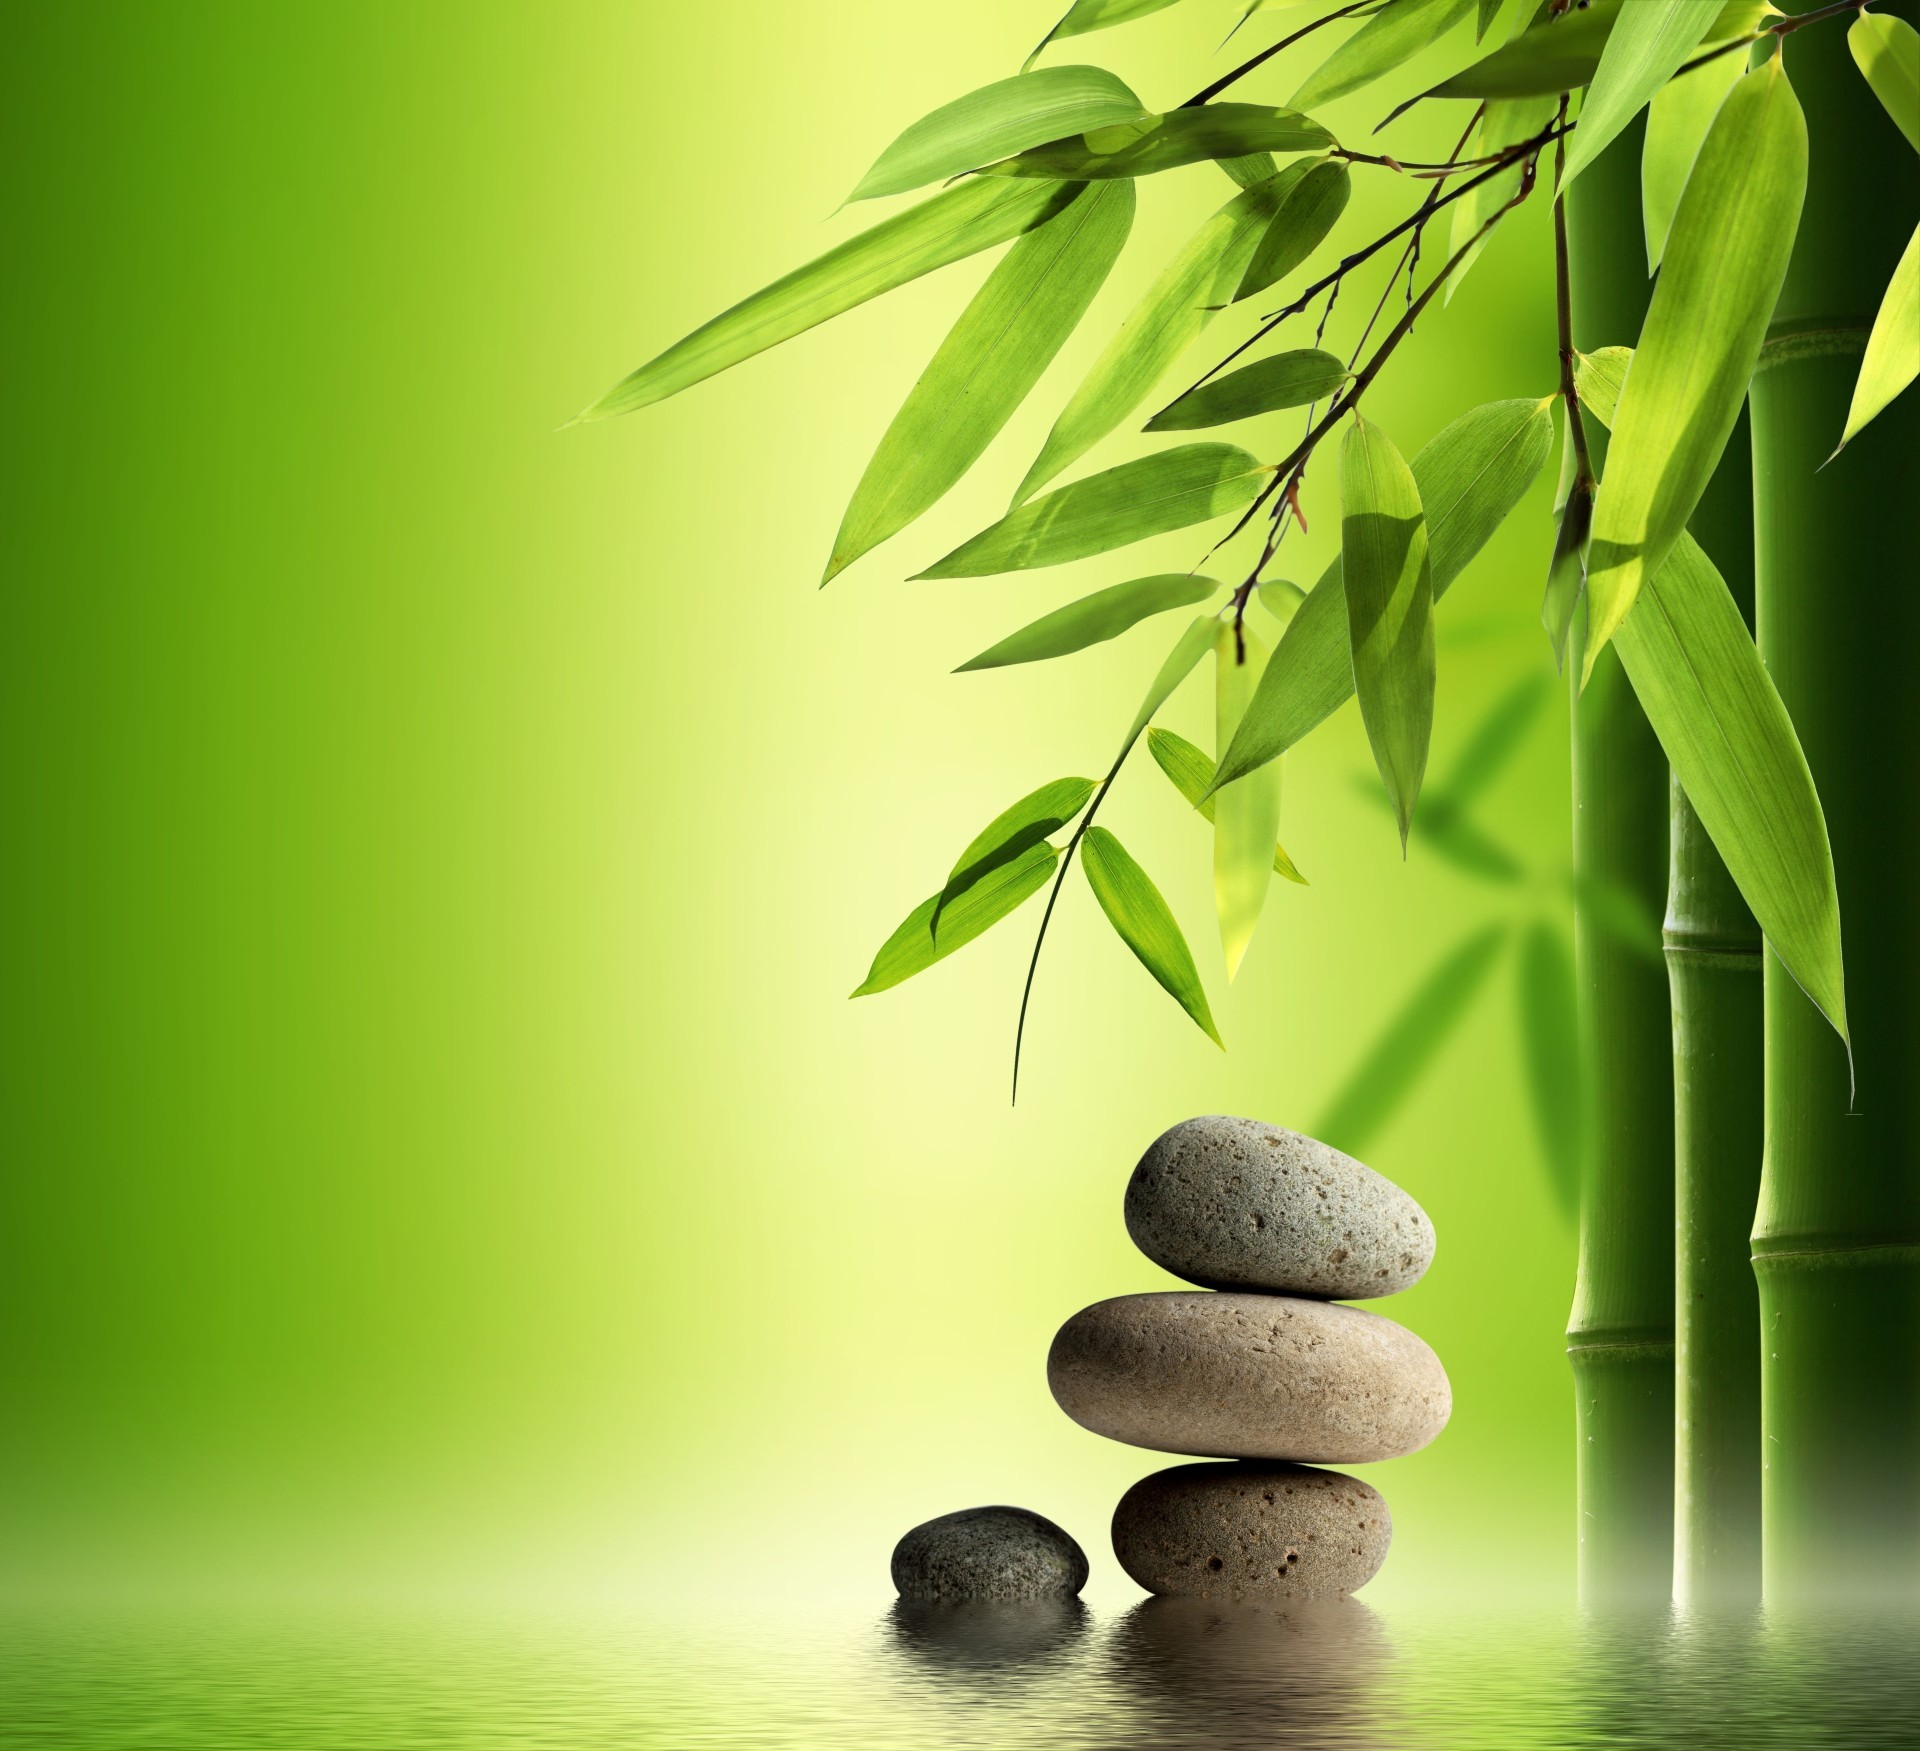 leaves zen balance harmony stability leaf bamboo meditation nature flora alternative therapy treatment peace minimalism simplicity growth cobblestone tree garden desktop